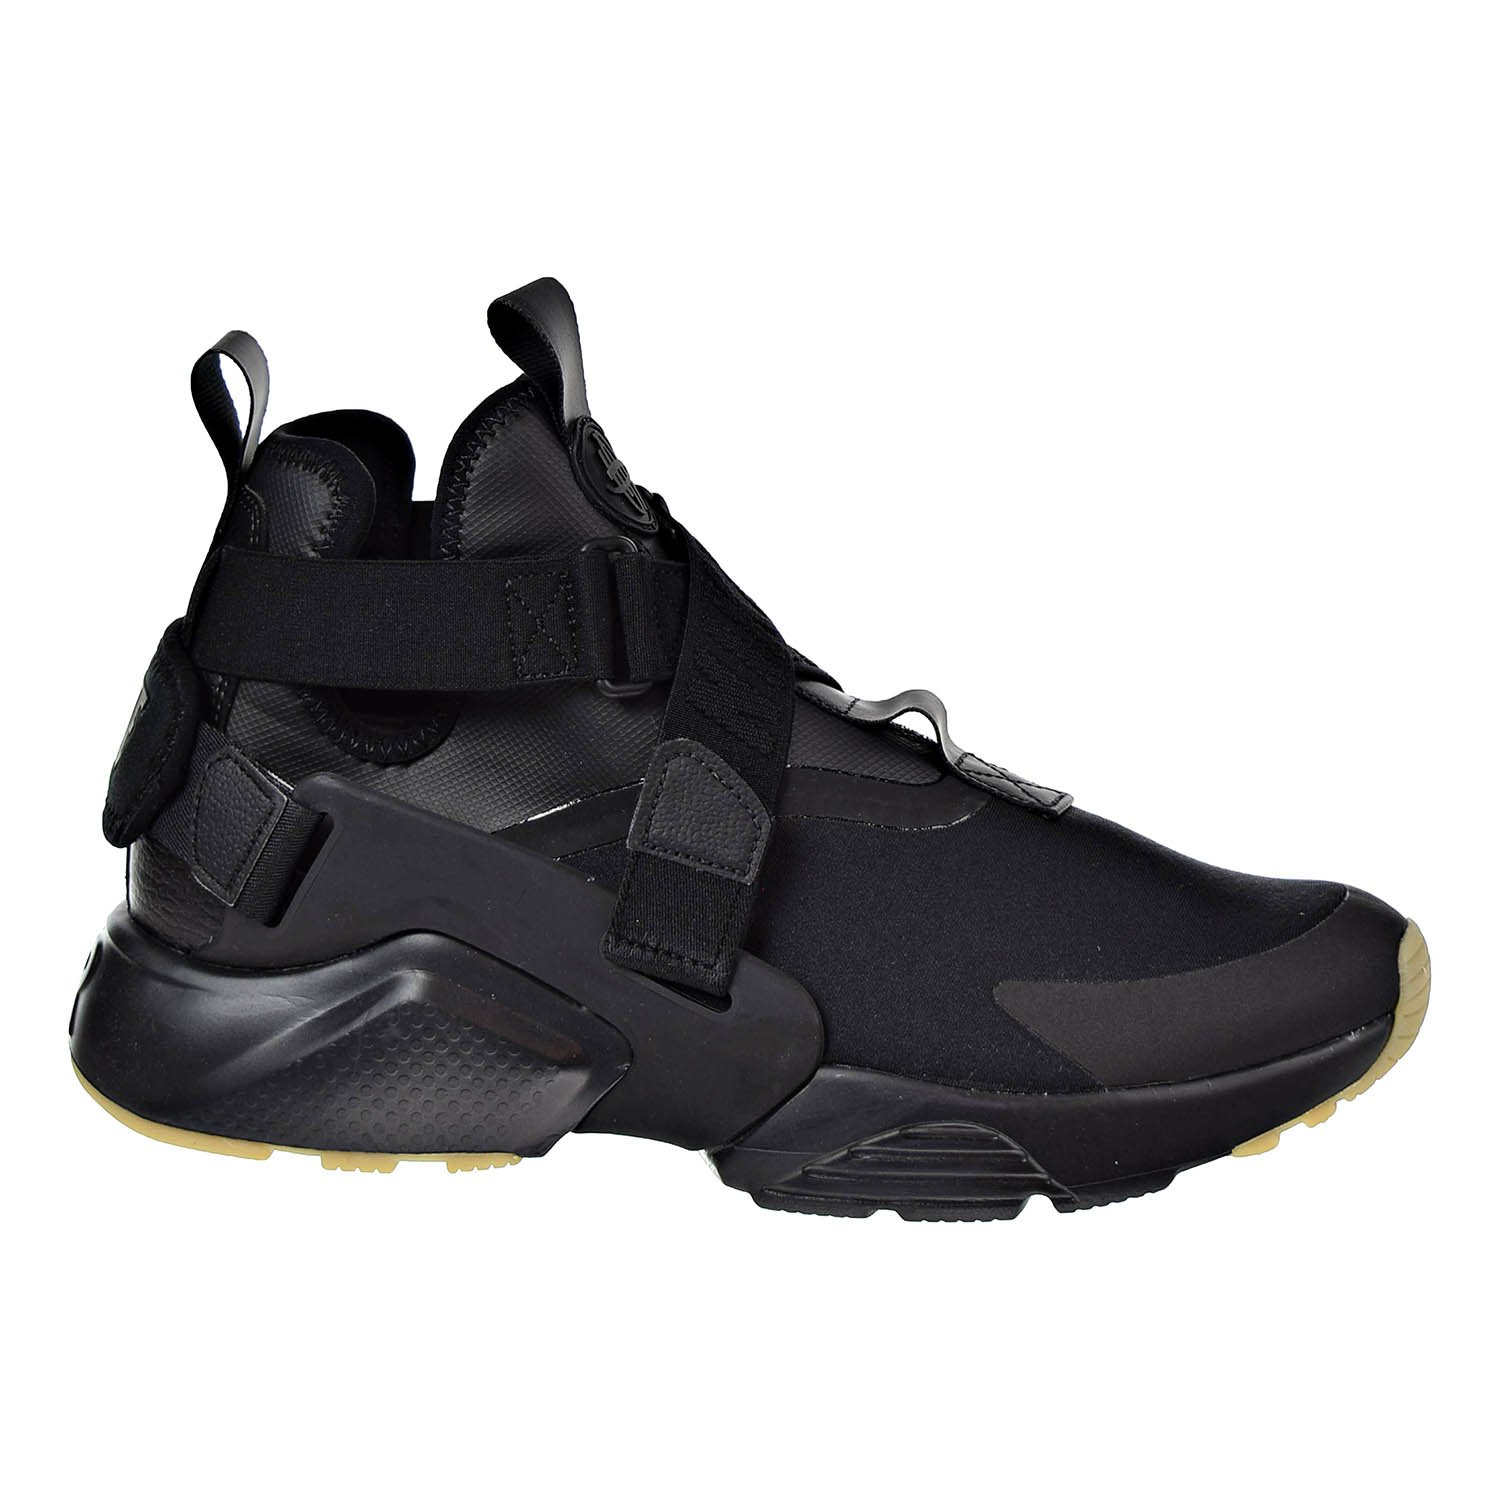 4d69af06d0575 Galleon - NIKE Air Huarache City Women s Casual Shoe Black Dark Grey Ah6787-003  (14.5 B(M) US)